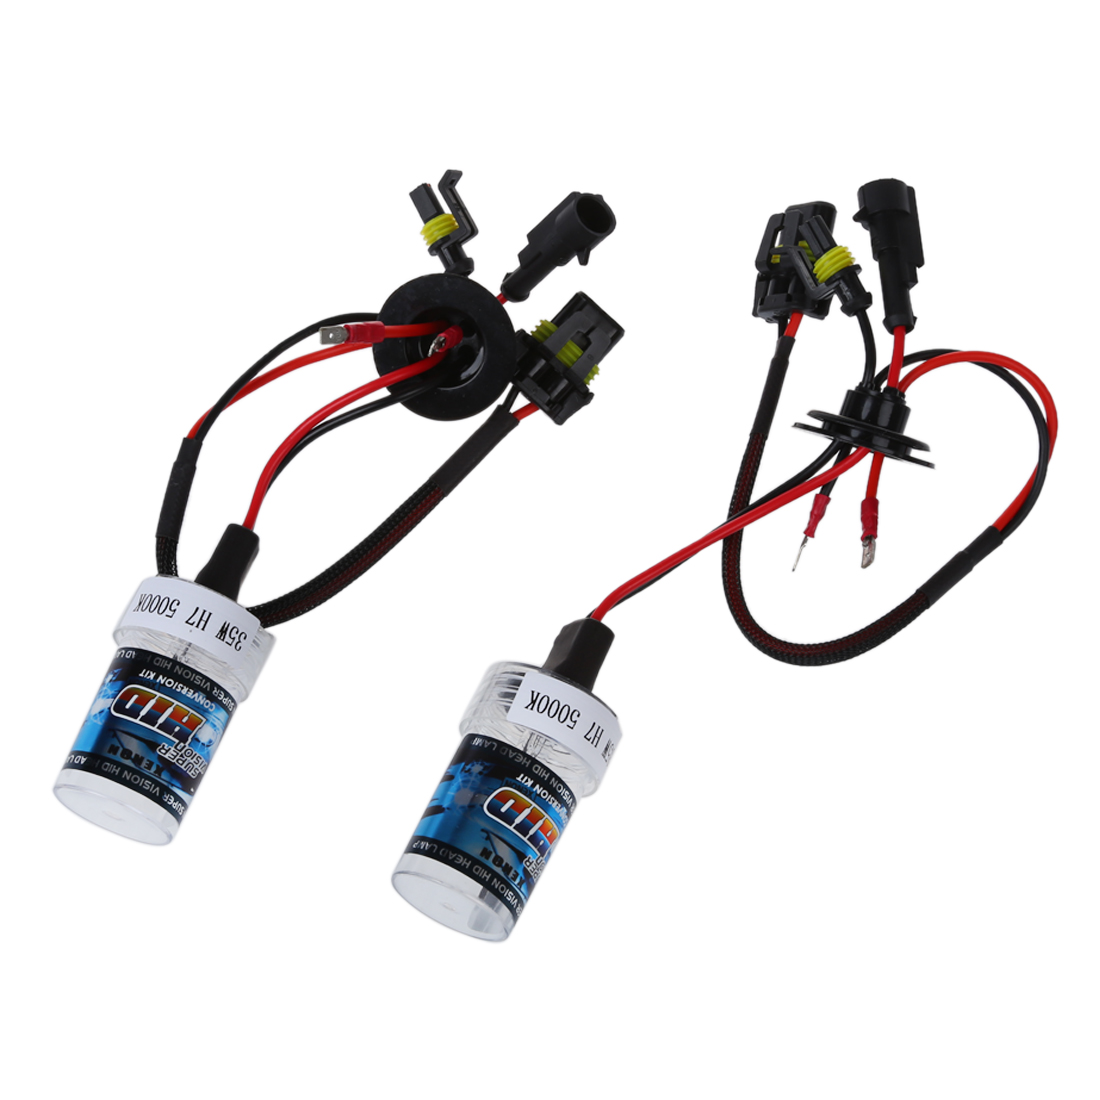 2x xenon HID Kit Car Auto Headlight Light Lamp Bulb For H7 35W DC 12V H7-5000K 2pcs lot d2r 55w 12v car hid xenon bulb for replacement auto headlight lamp light source 4300k 5000k 6000k 8000k 10000k 12000k